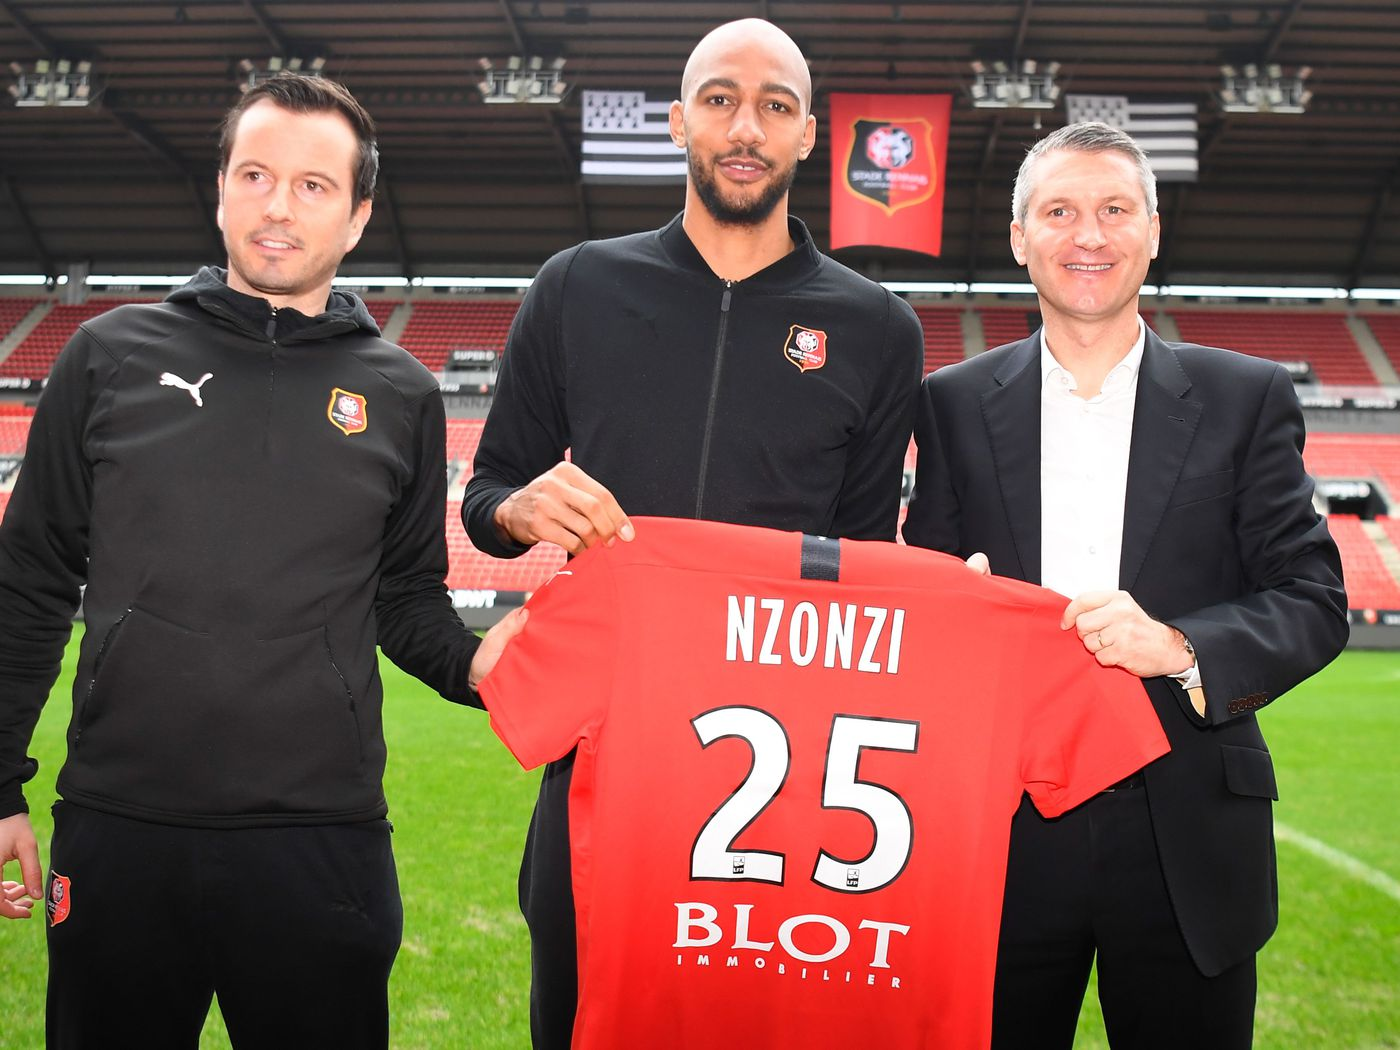 L'Equipe: Rennes No Longer Interested in Nzonzi, Will Return to ...